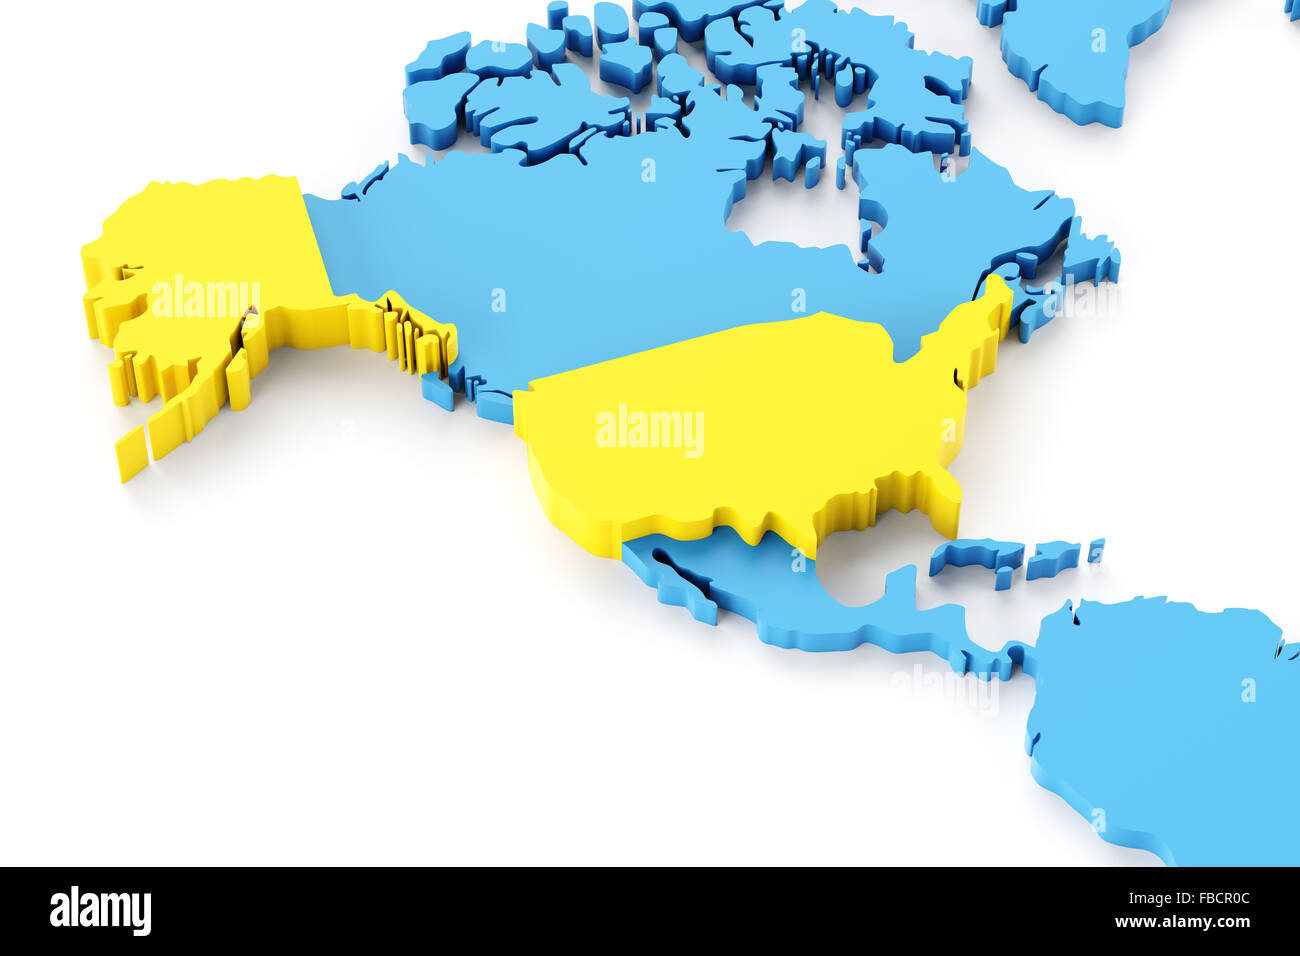 North american map stock photos north american map stock images map of north america with usa highlighted stock image gumiabroncs Images